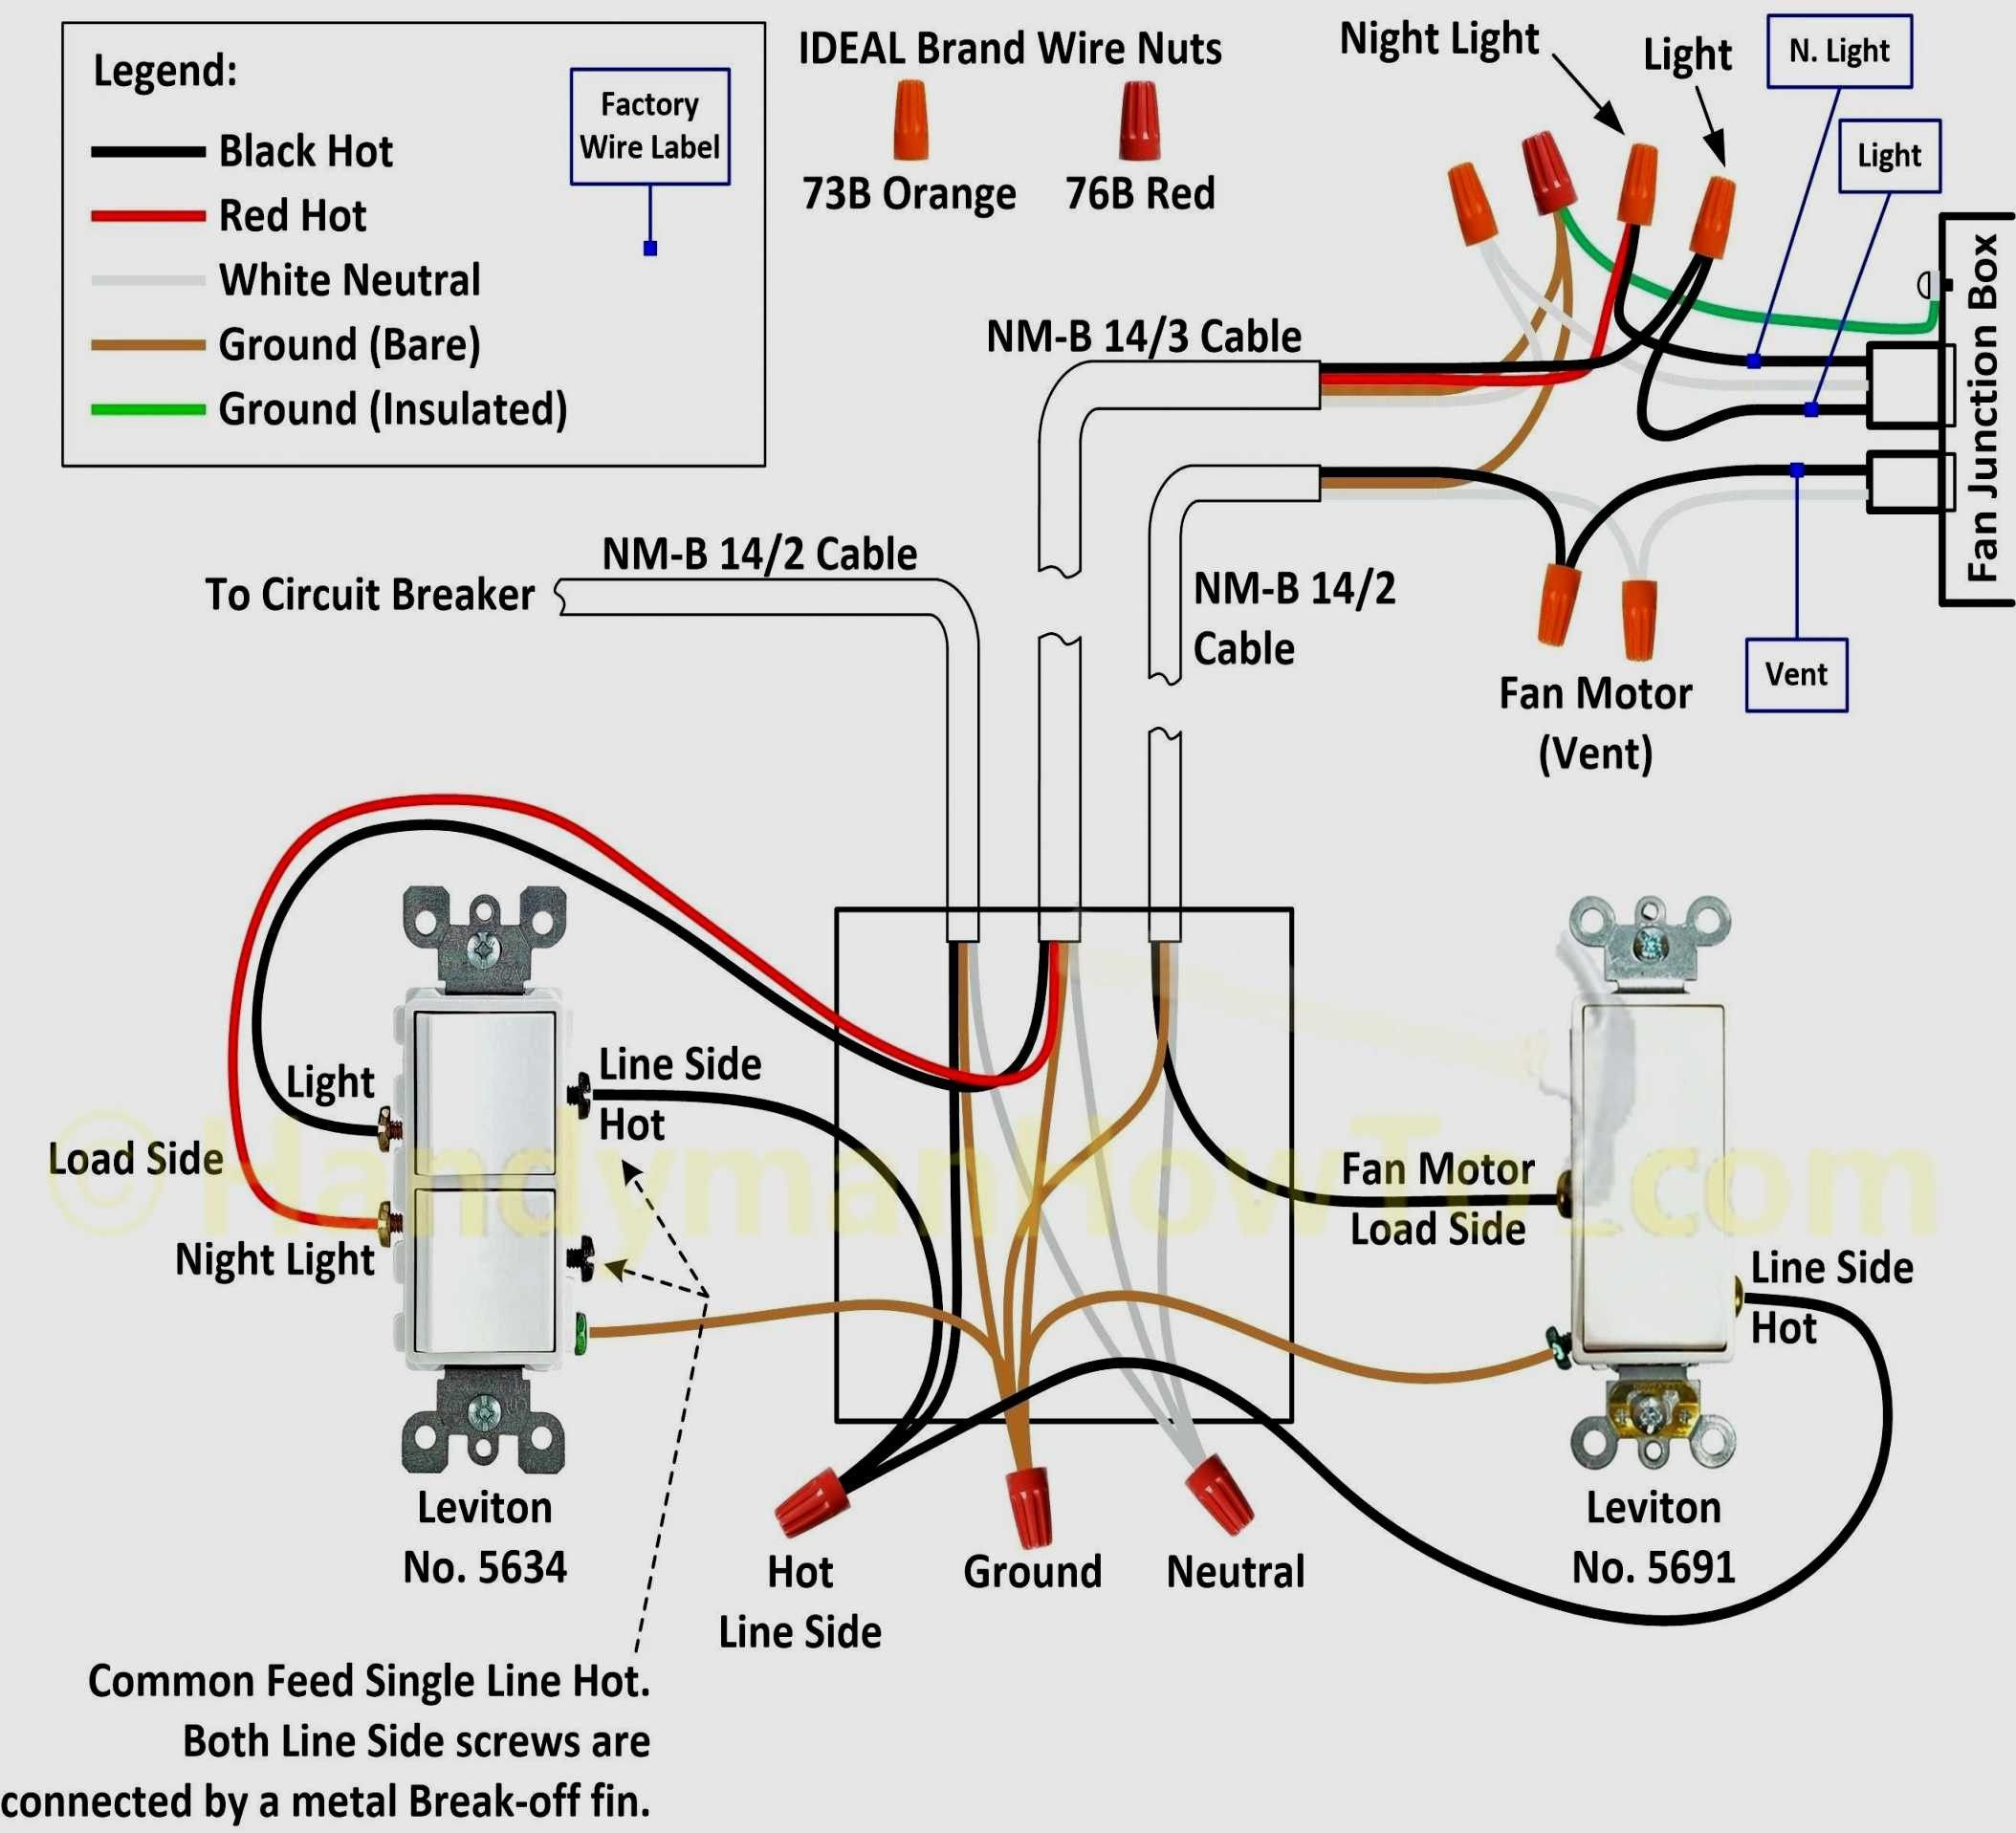 Diagram Diagramsample Diagramformat Ceiling Fan Wiring Light Switch Wiring Ceiling Fan Switch